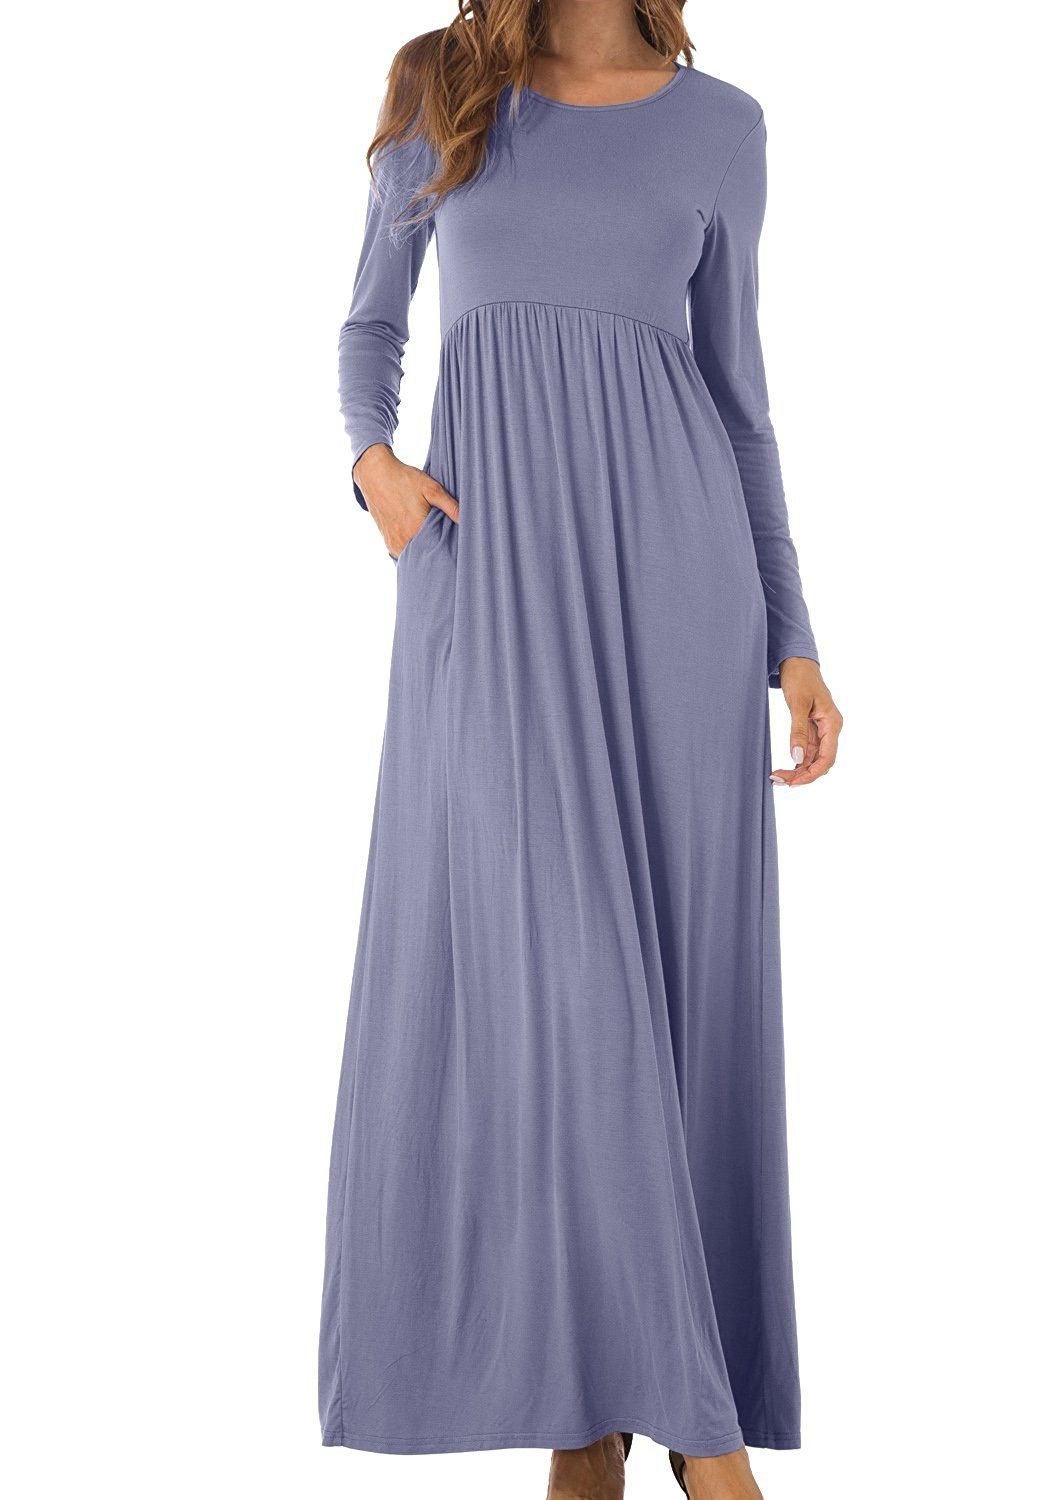 6117a6d233 Simier Fariry Women's Scoop Neck Pockets Pleated Loose Swing Casual Maxi  Dress at Amazon Women's Clothing store: